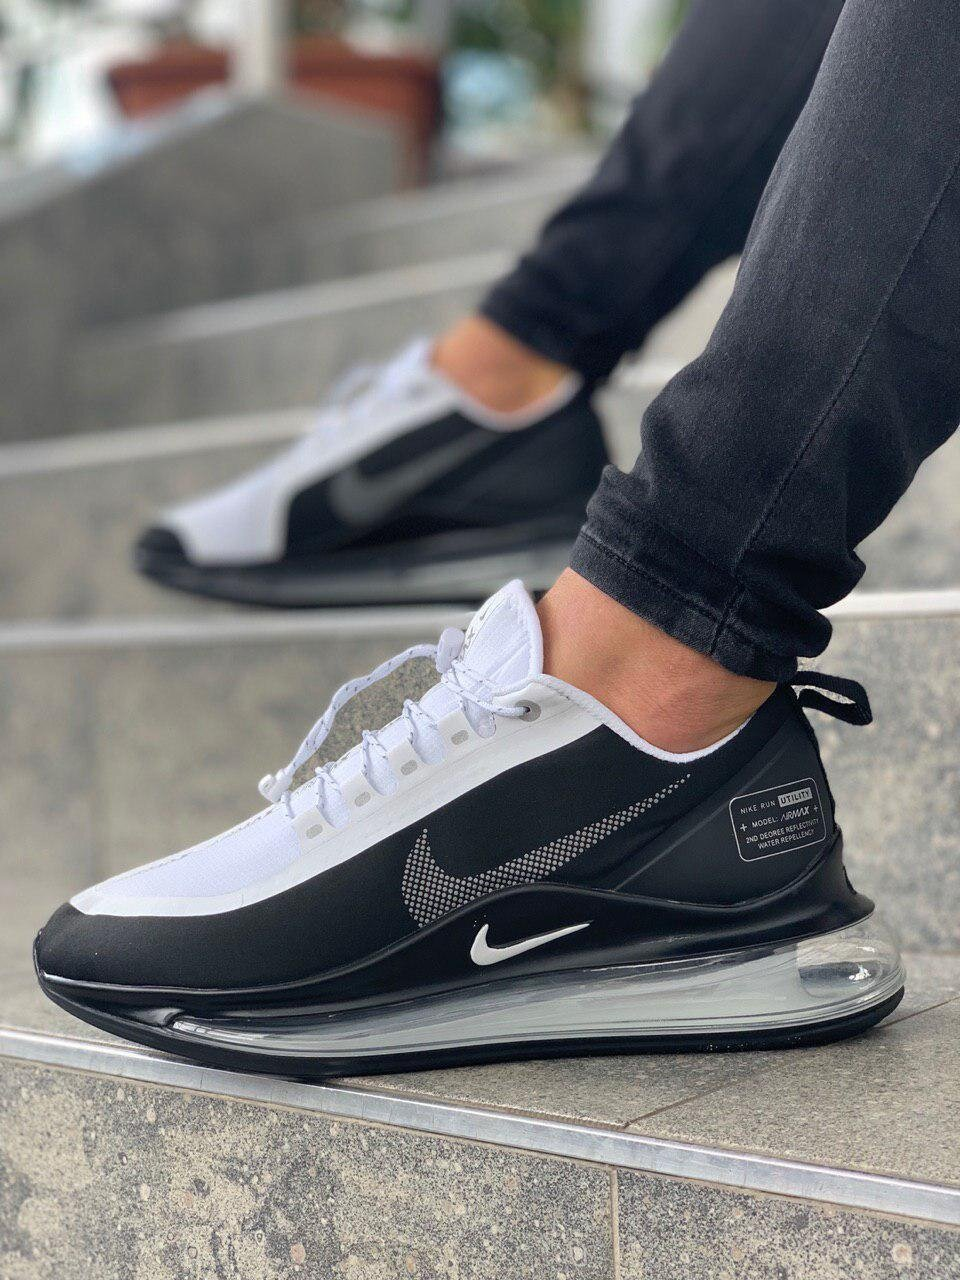 Кроссовки NK Air Max 720 Shadow Black and White ( Реплика ААА+ ), 41